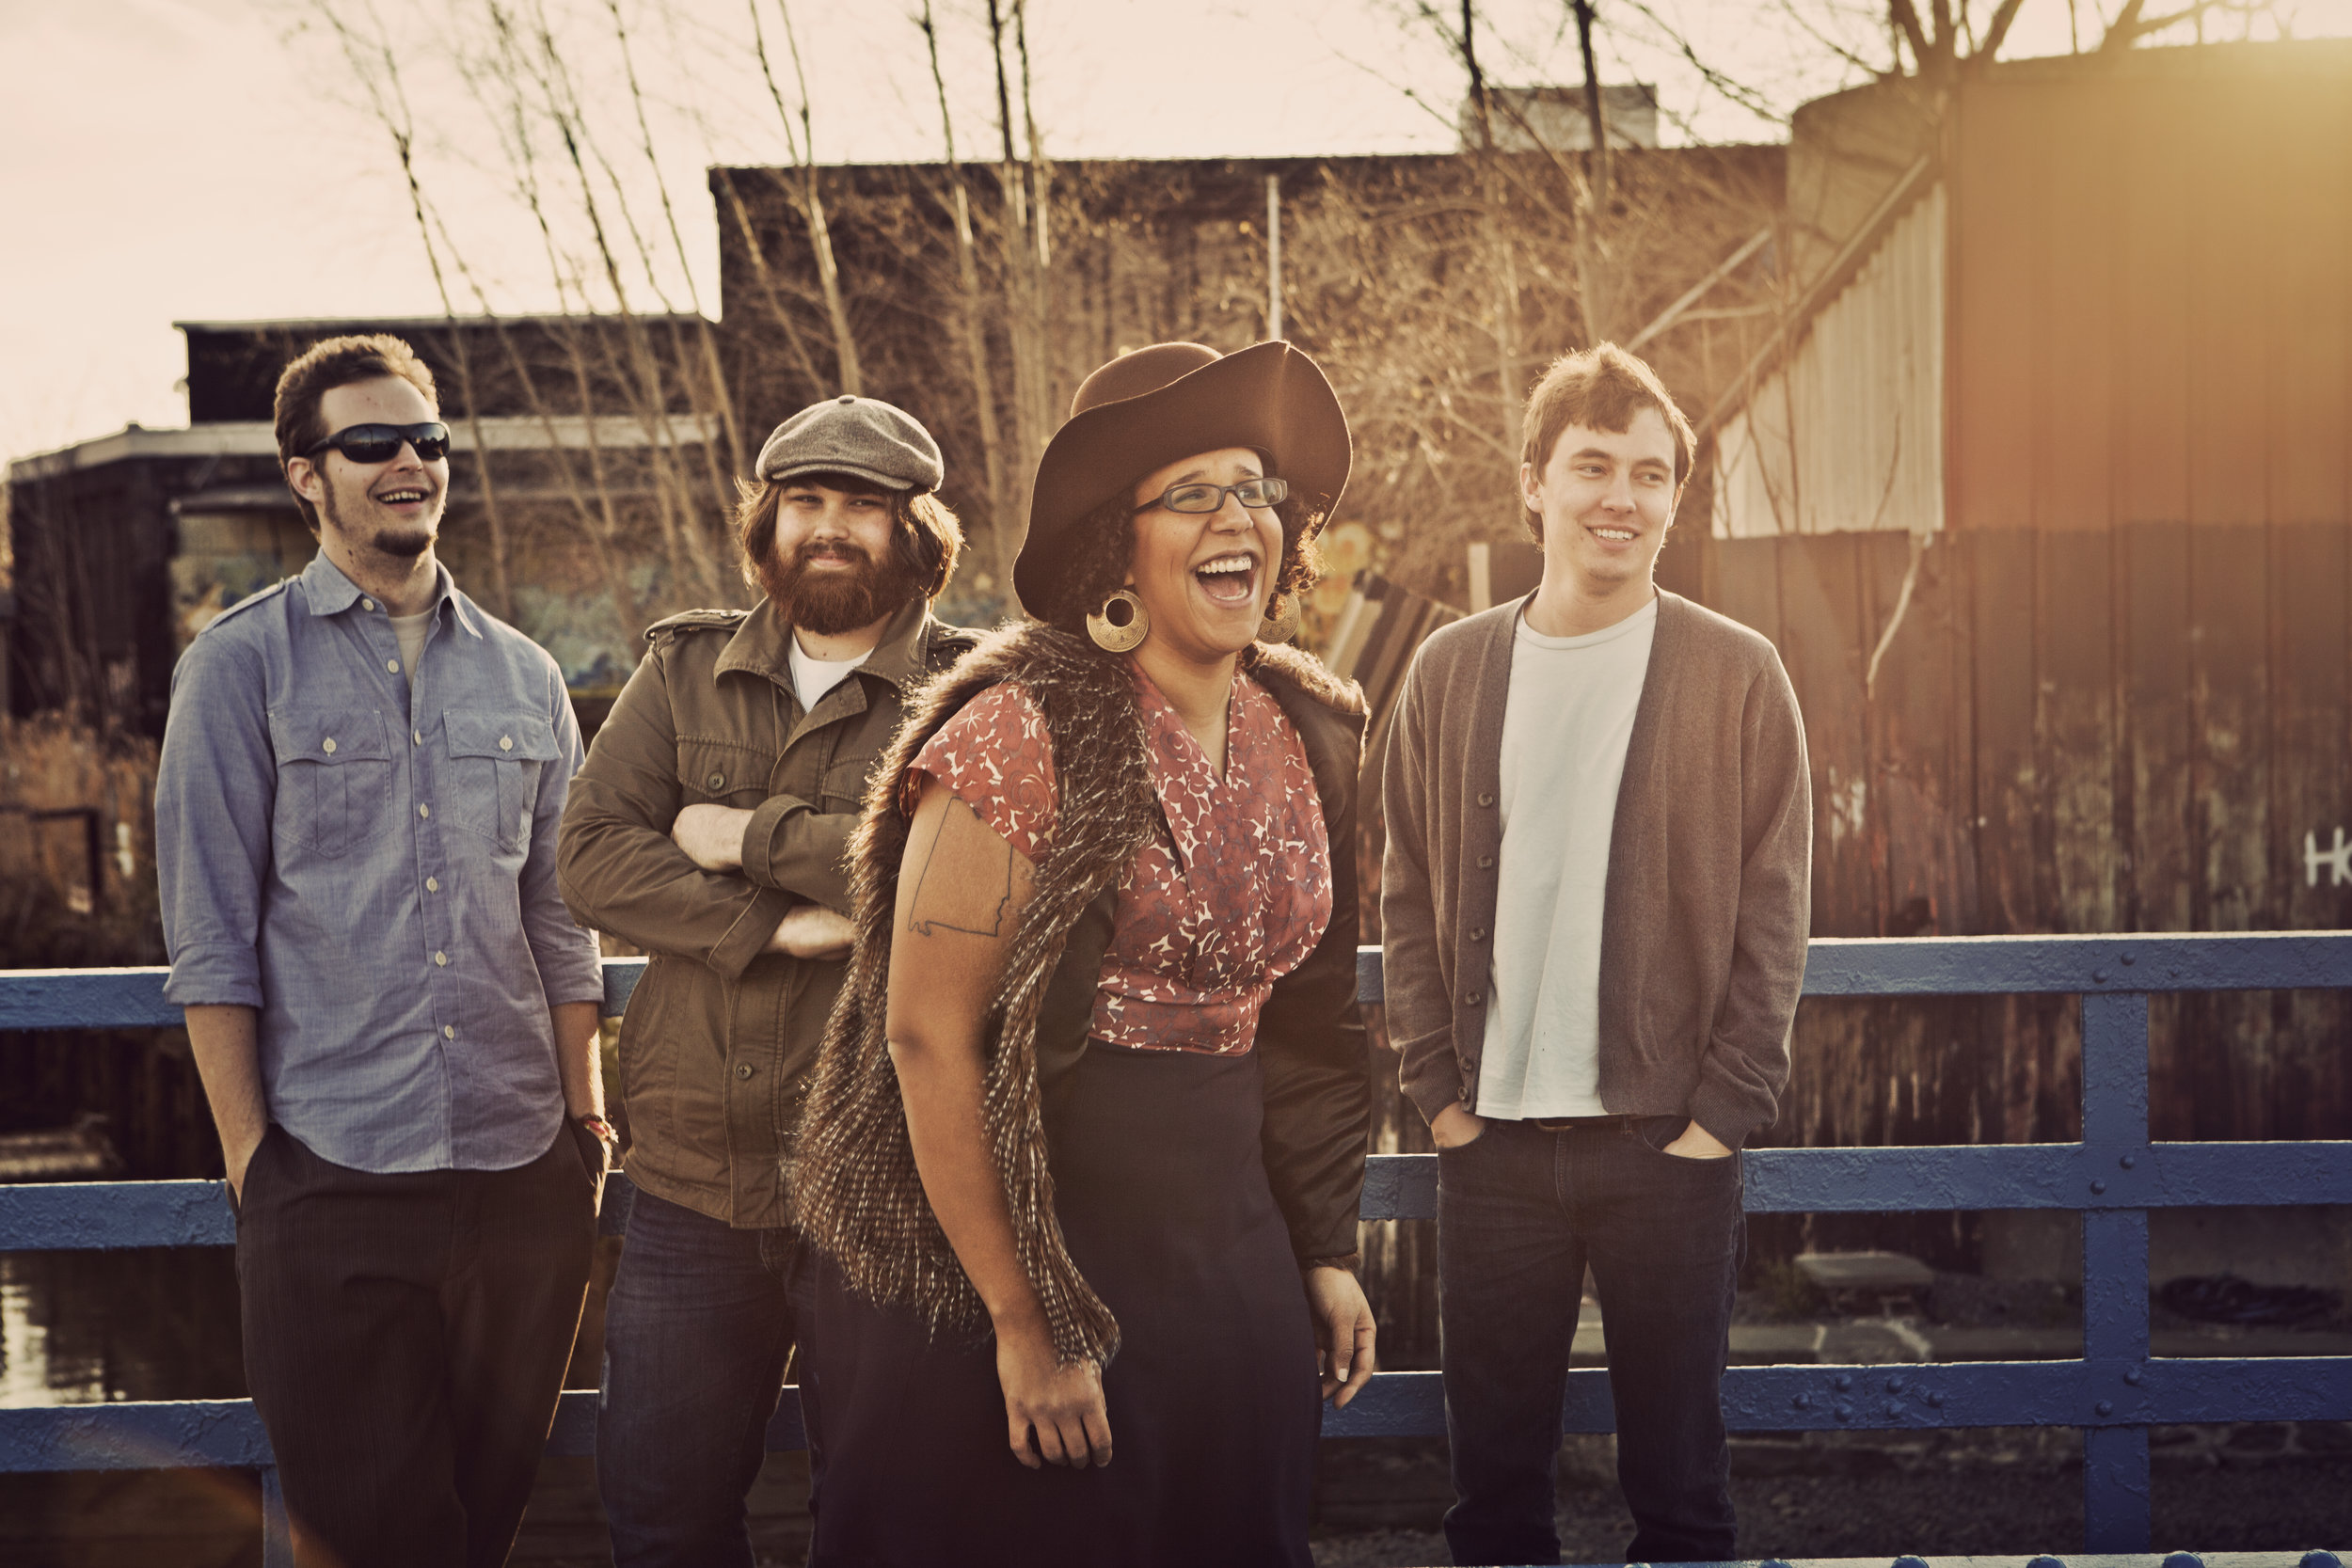 Alabama Shakes, Brooklyn, 2011